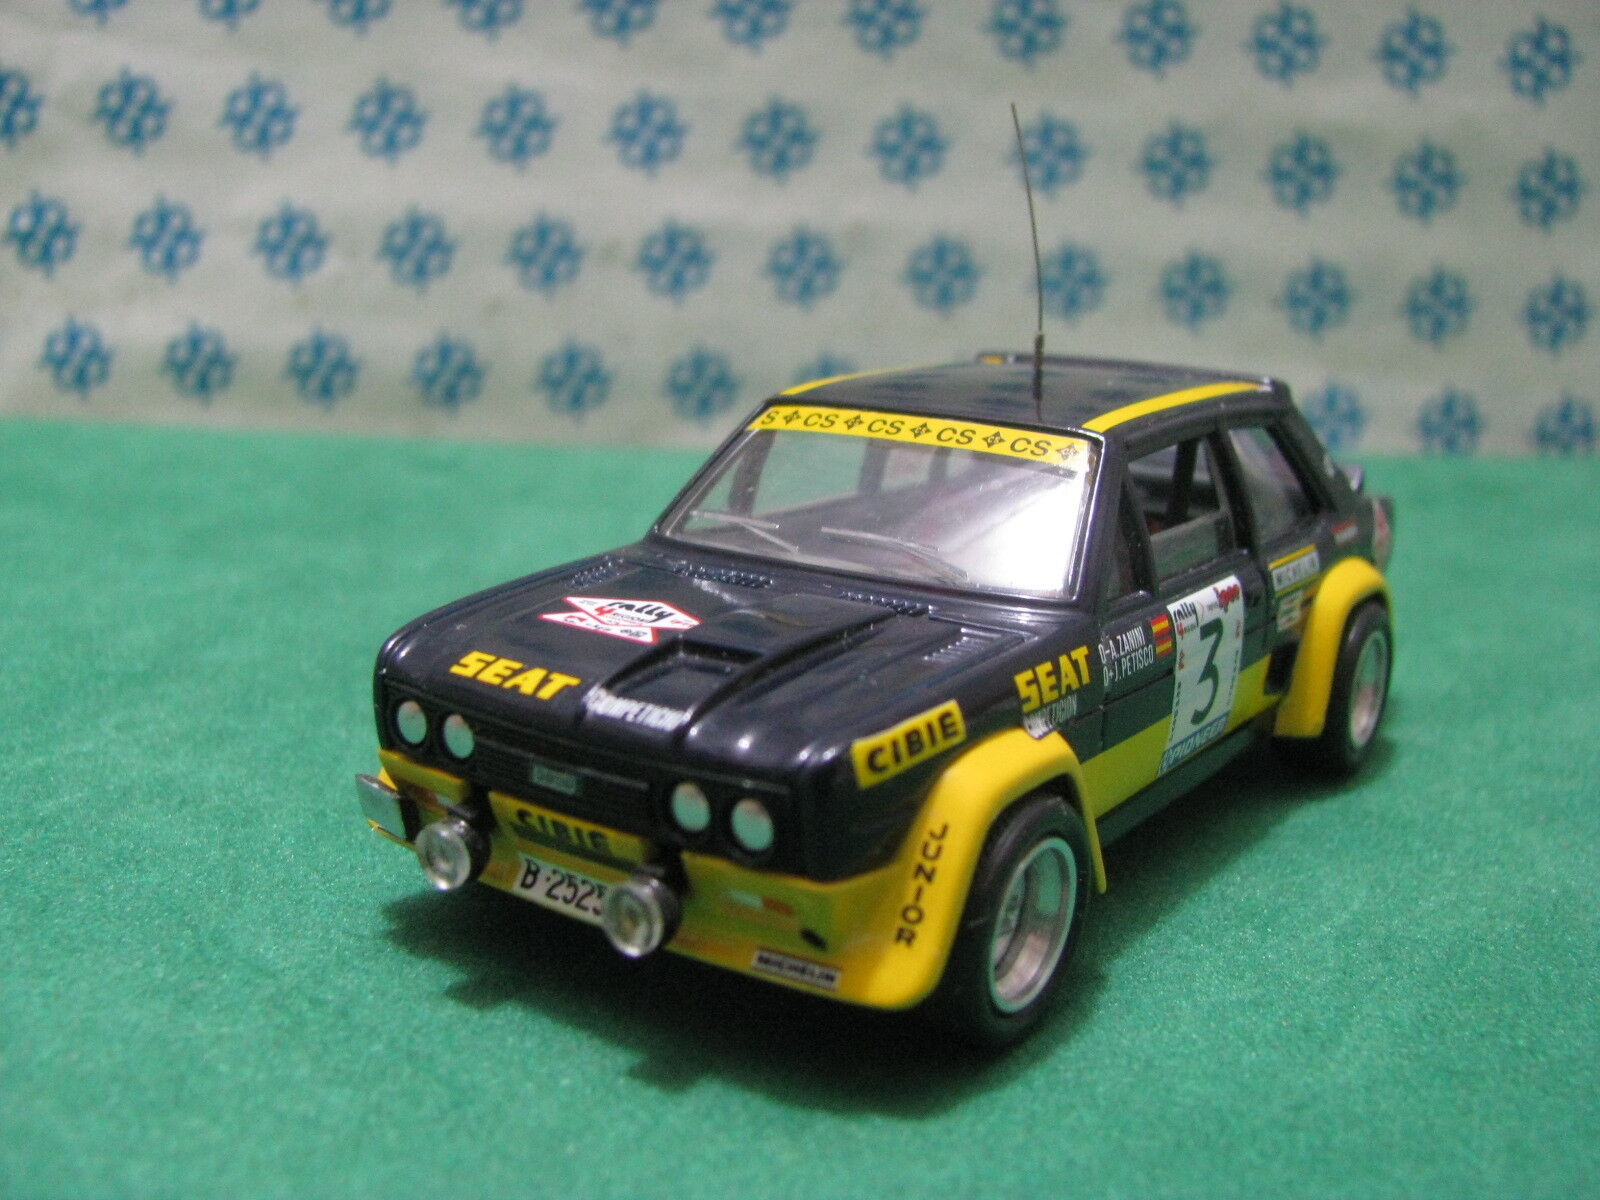 Vintage-Fiat 131 Abarth Rally 4 Che - 1 43 Elab. base Solido 1977